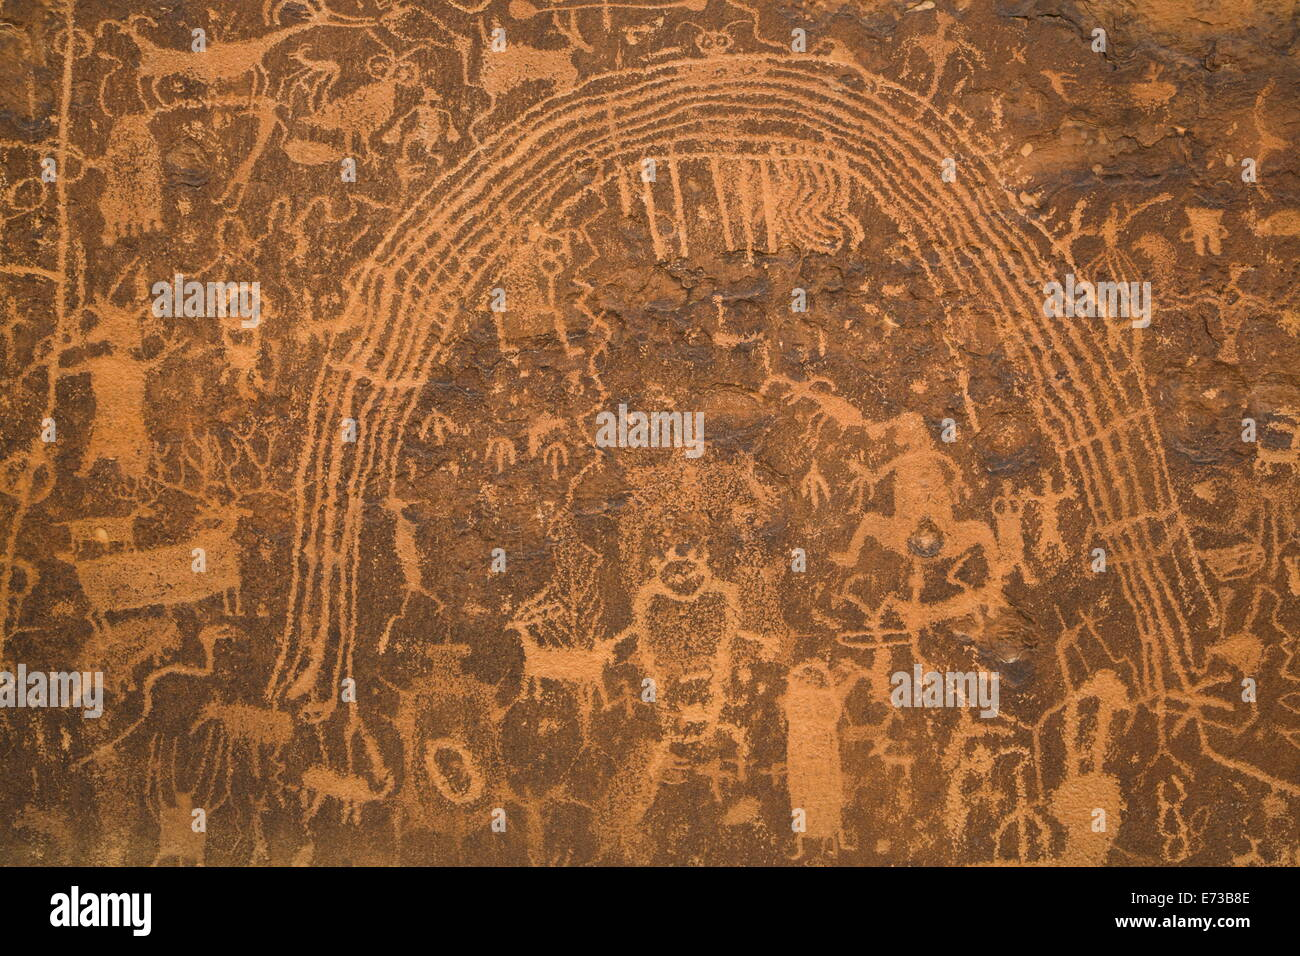 Rochester Petroglyph Panel, contains both Barrier Canyon style and Fremont style elements, near Emery, Utah, USA - Stock Image